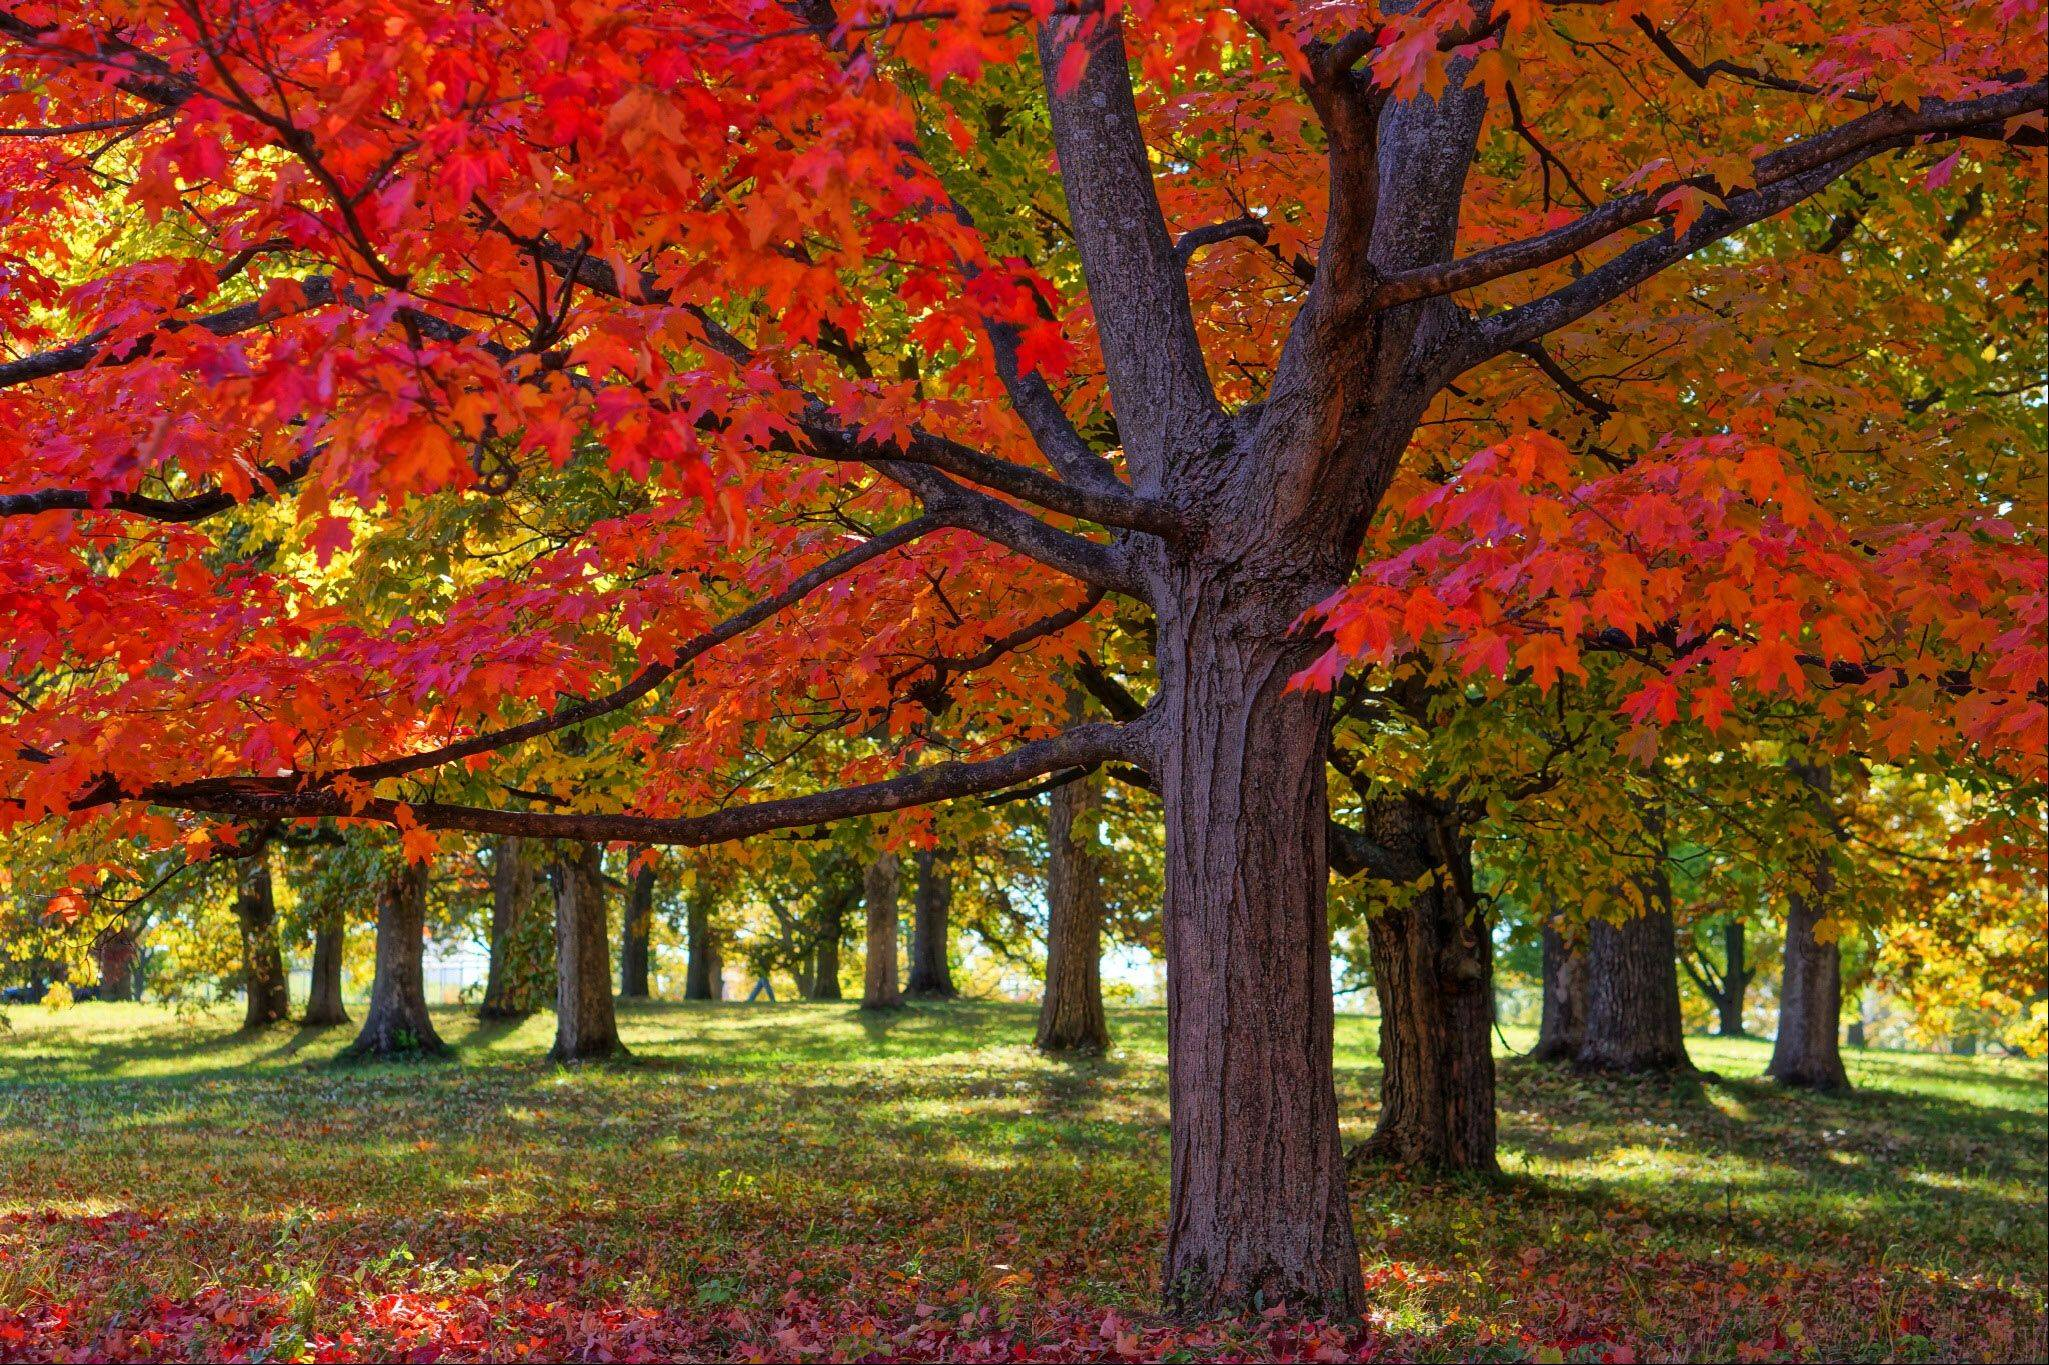 Fall's grand show was revealed in the brilliance of the maple trees at the Morton Arboretum in Lisle this past week.